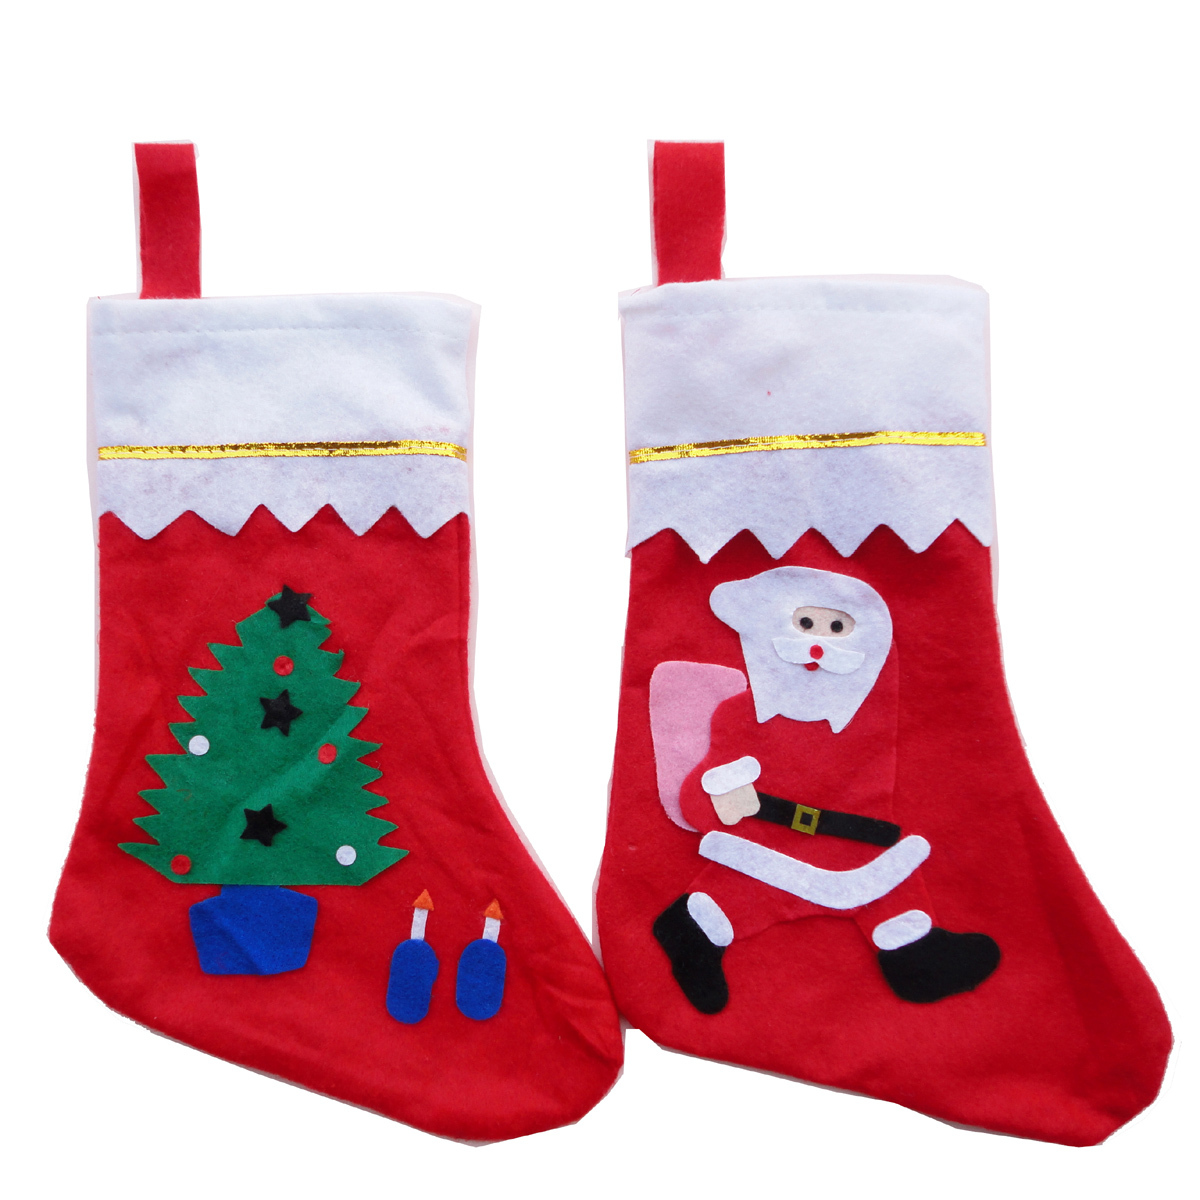 thousands of odd fang christmas christmas decorations socks gift bag gift bag window decoration socks christmas gift bag - Christmas Socks Decoration